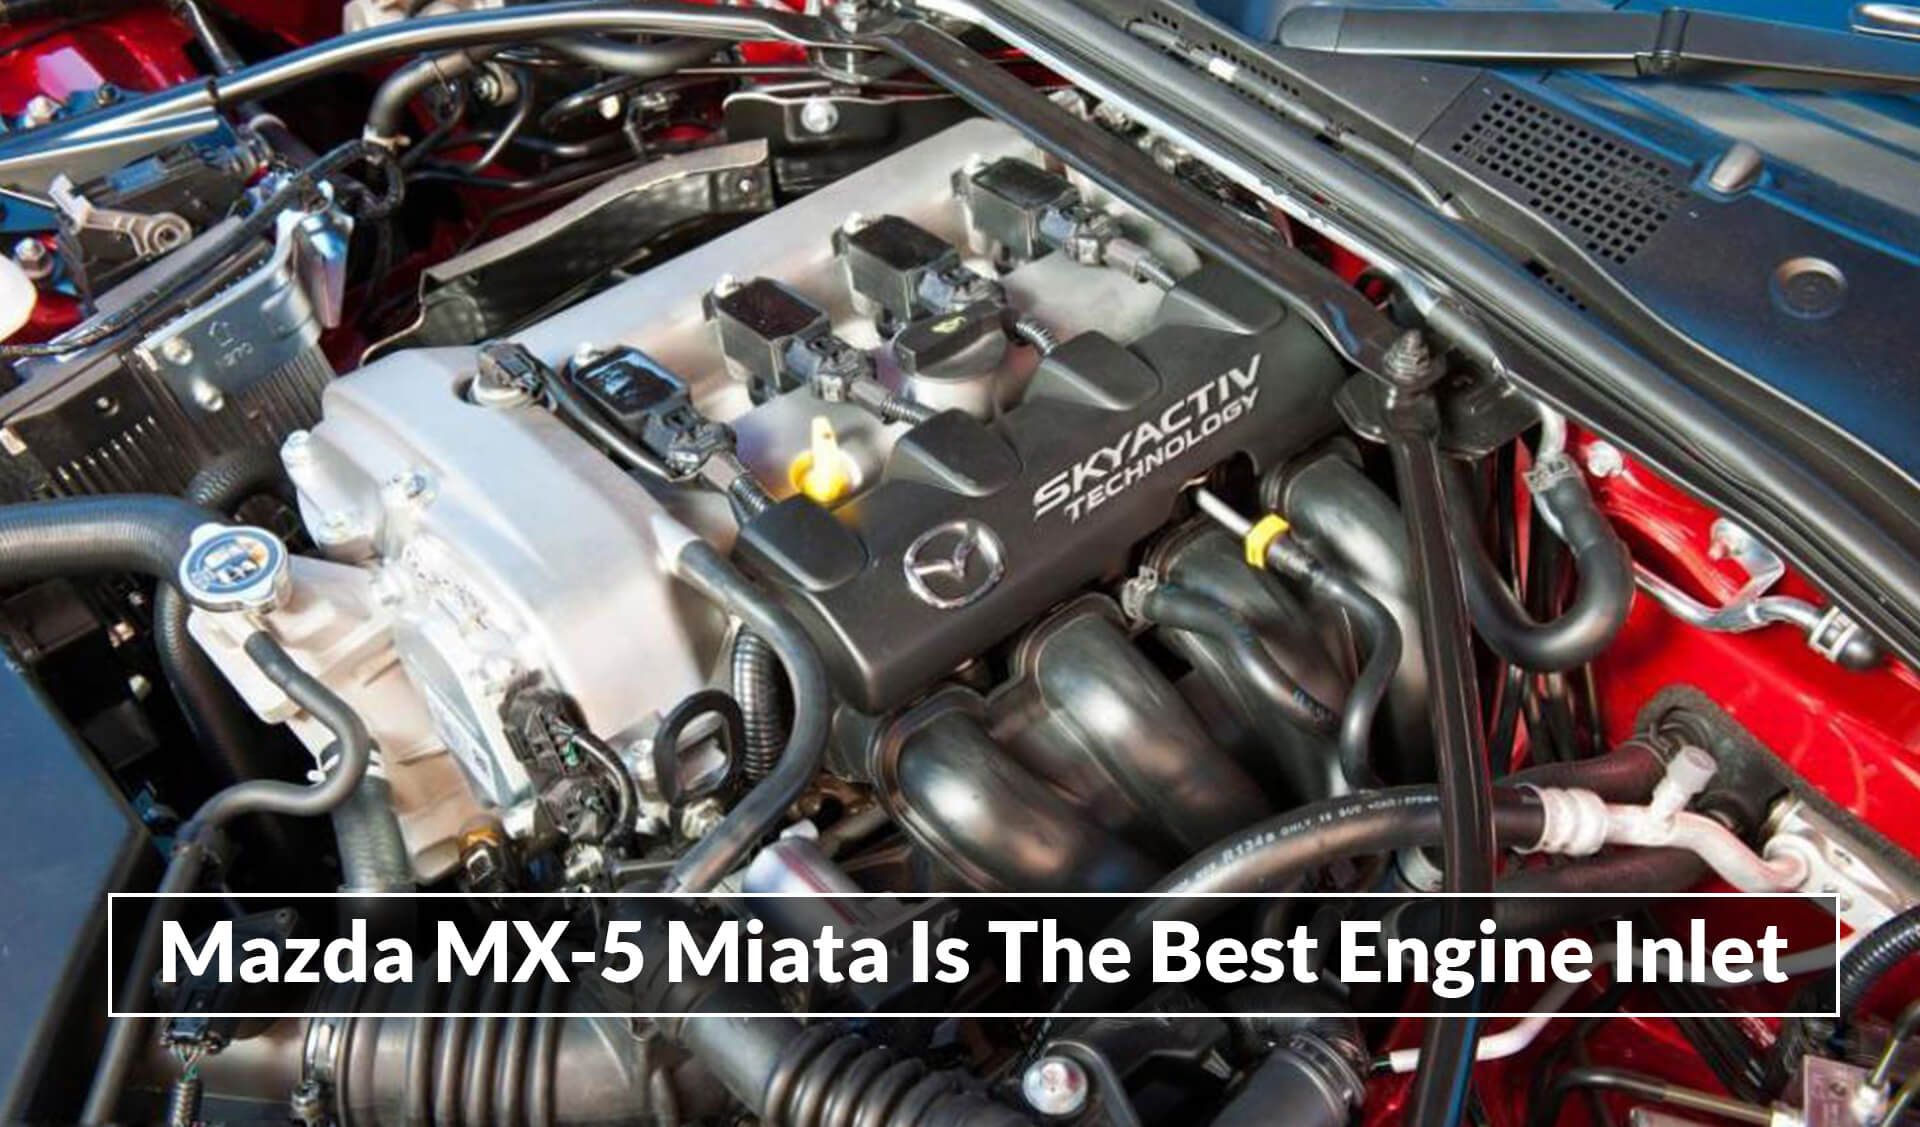 Mazda MX-5 Miata Is The Best Engine Inlet - ebuddynews